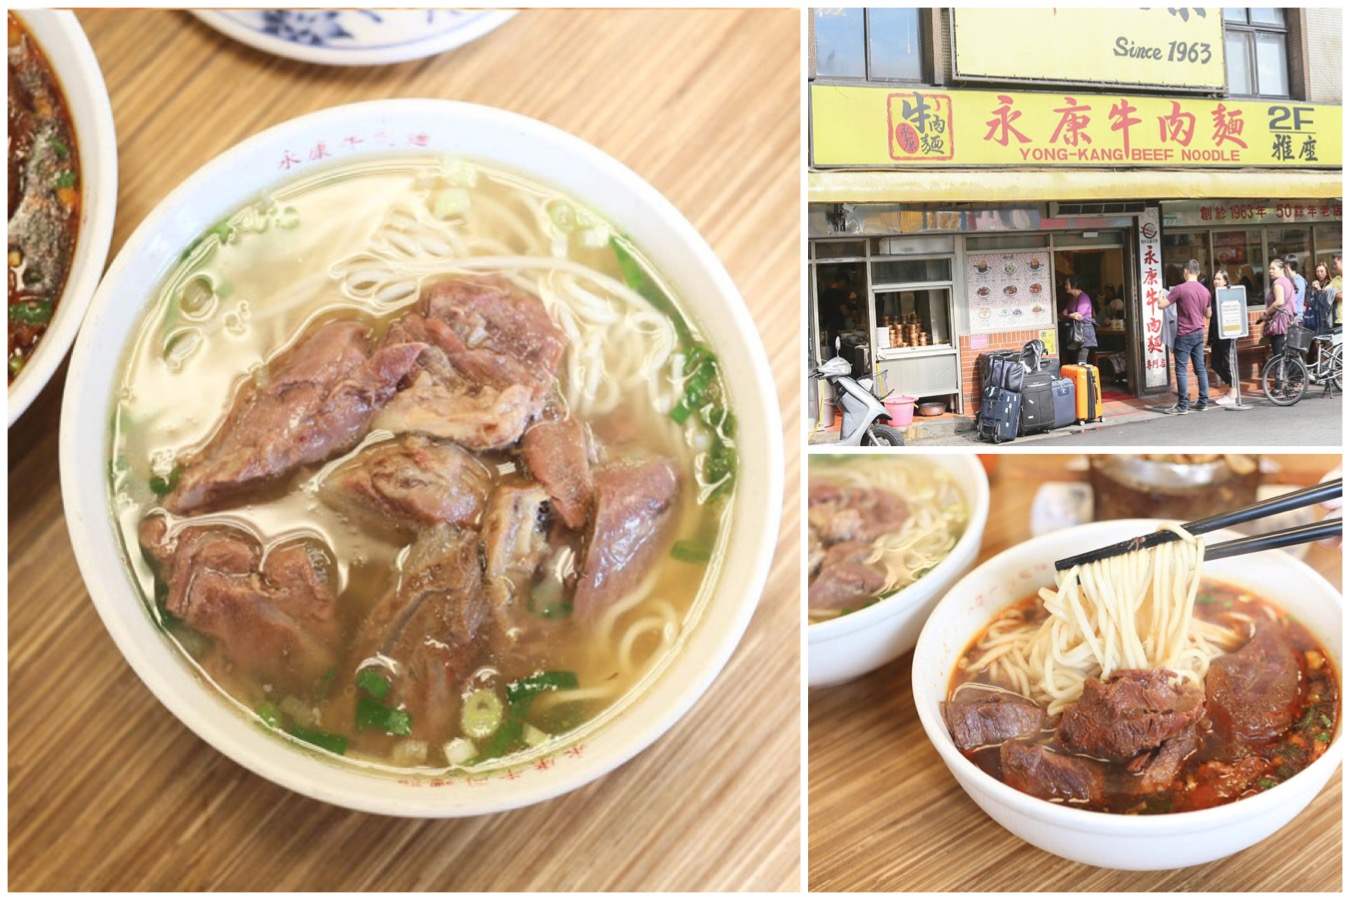 Yong Kang Beef Noodles 永康牛肉麺館 - One Of The Best Taiwanese Beef Noodles In Taipei